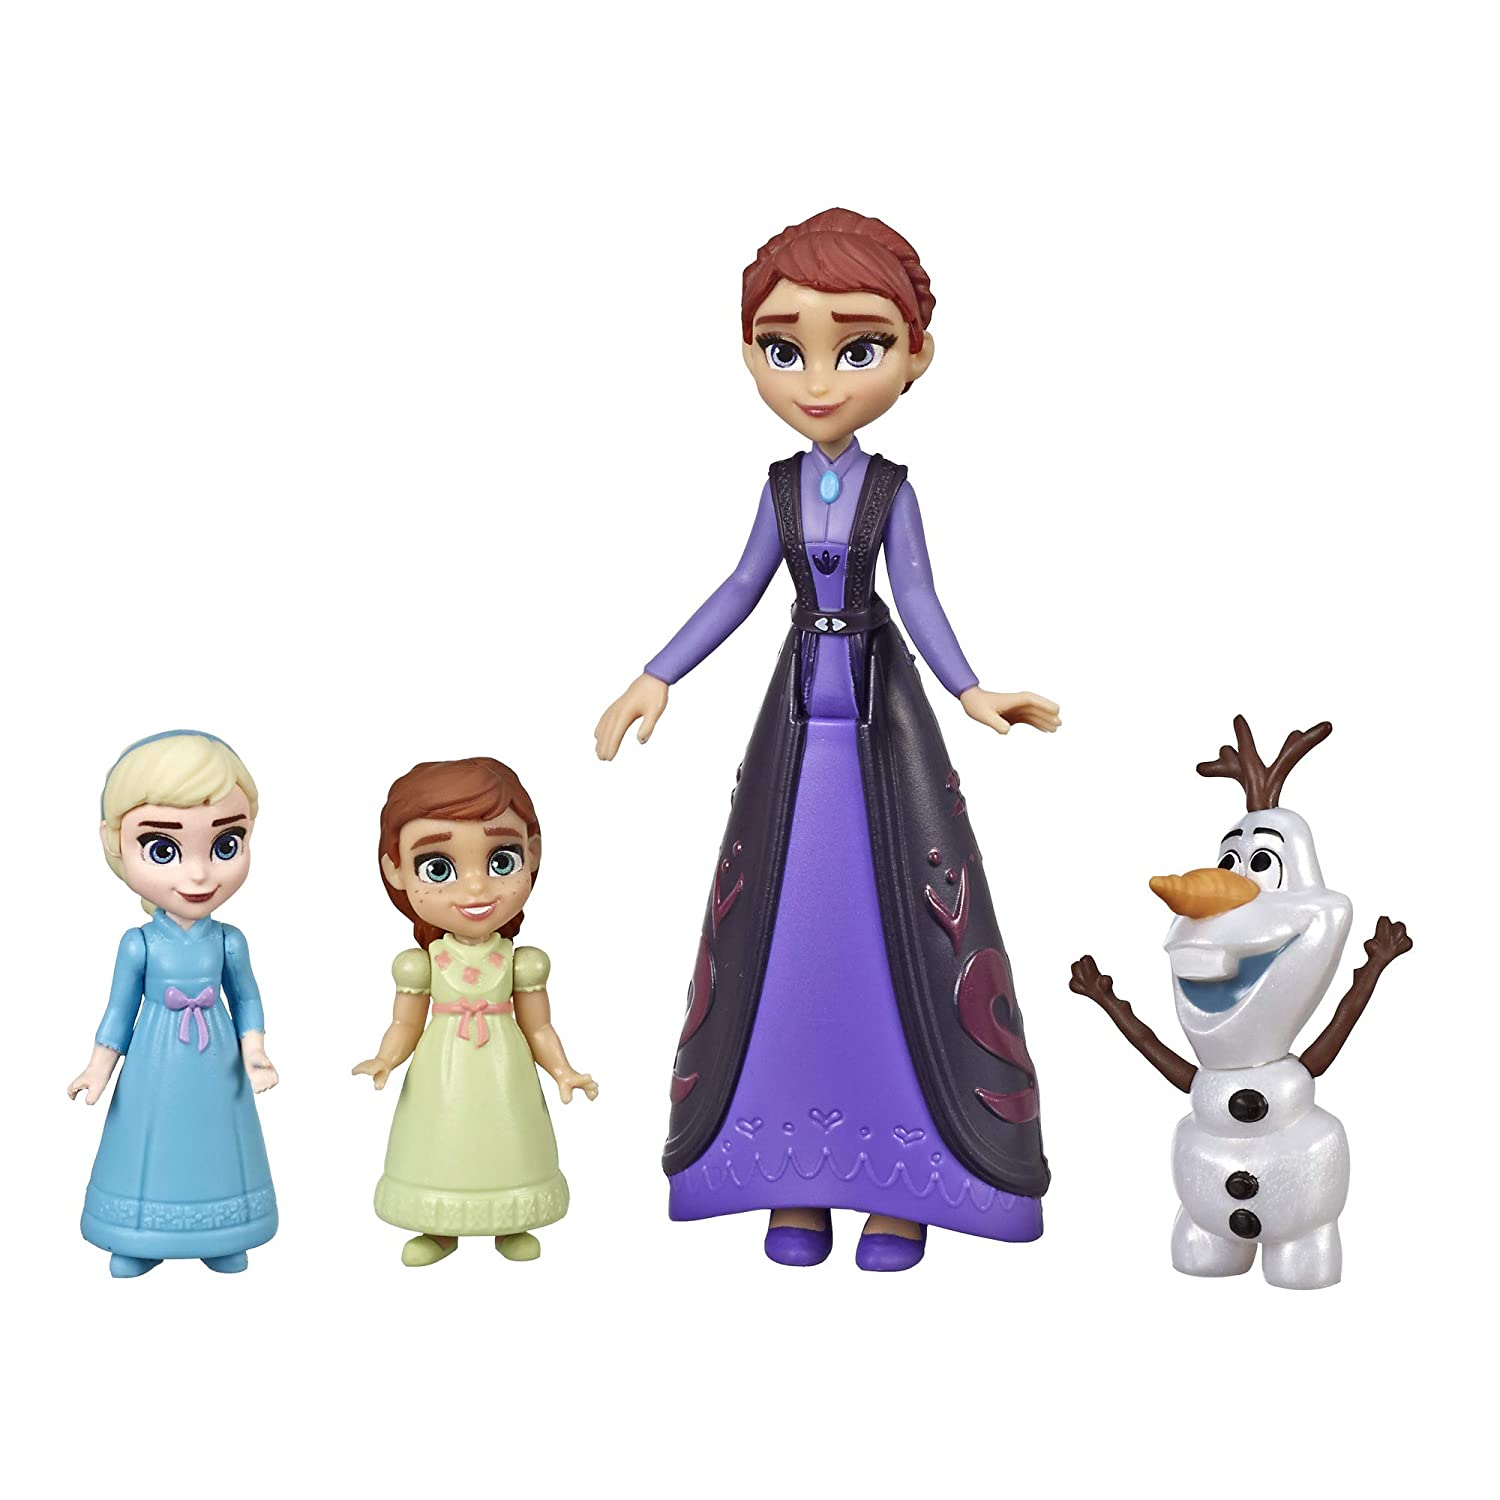 Amazon.com: Disney Frozen Juego familiar de muñecas Elsa y ...